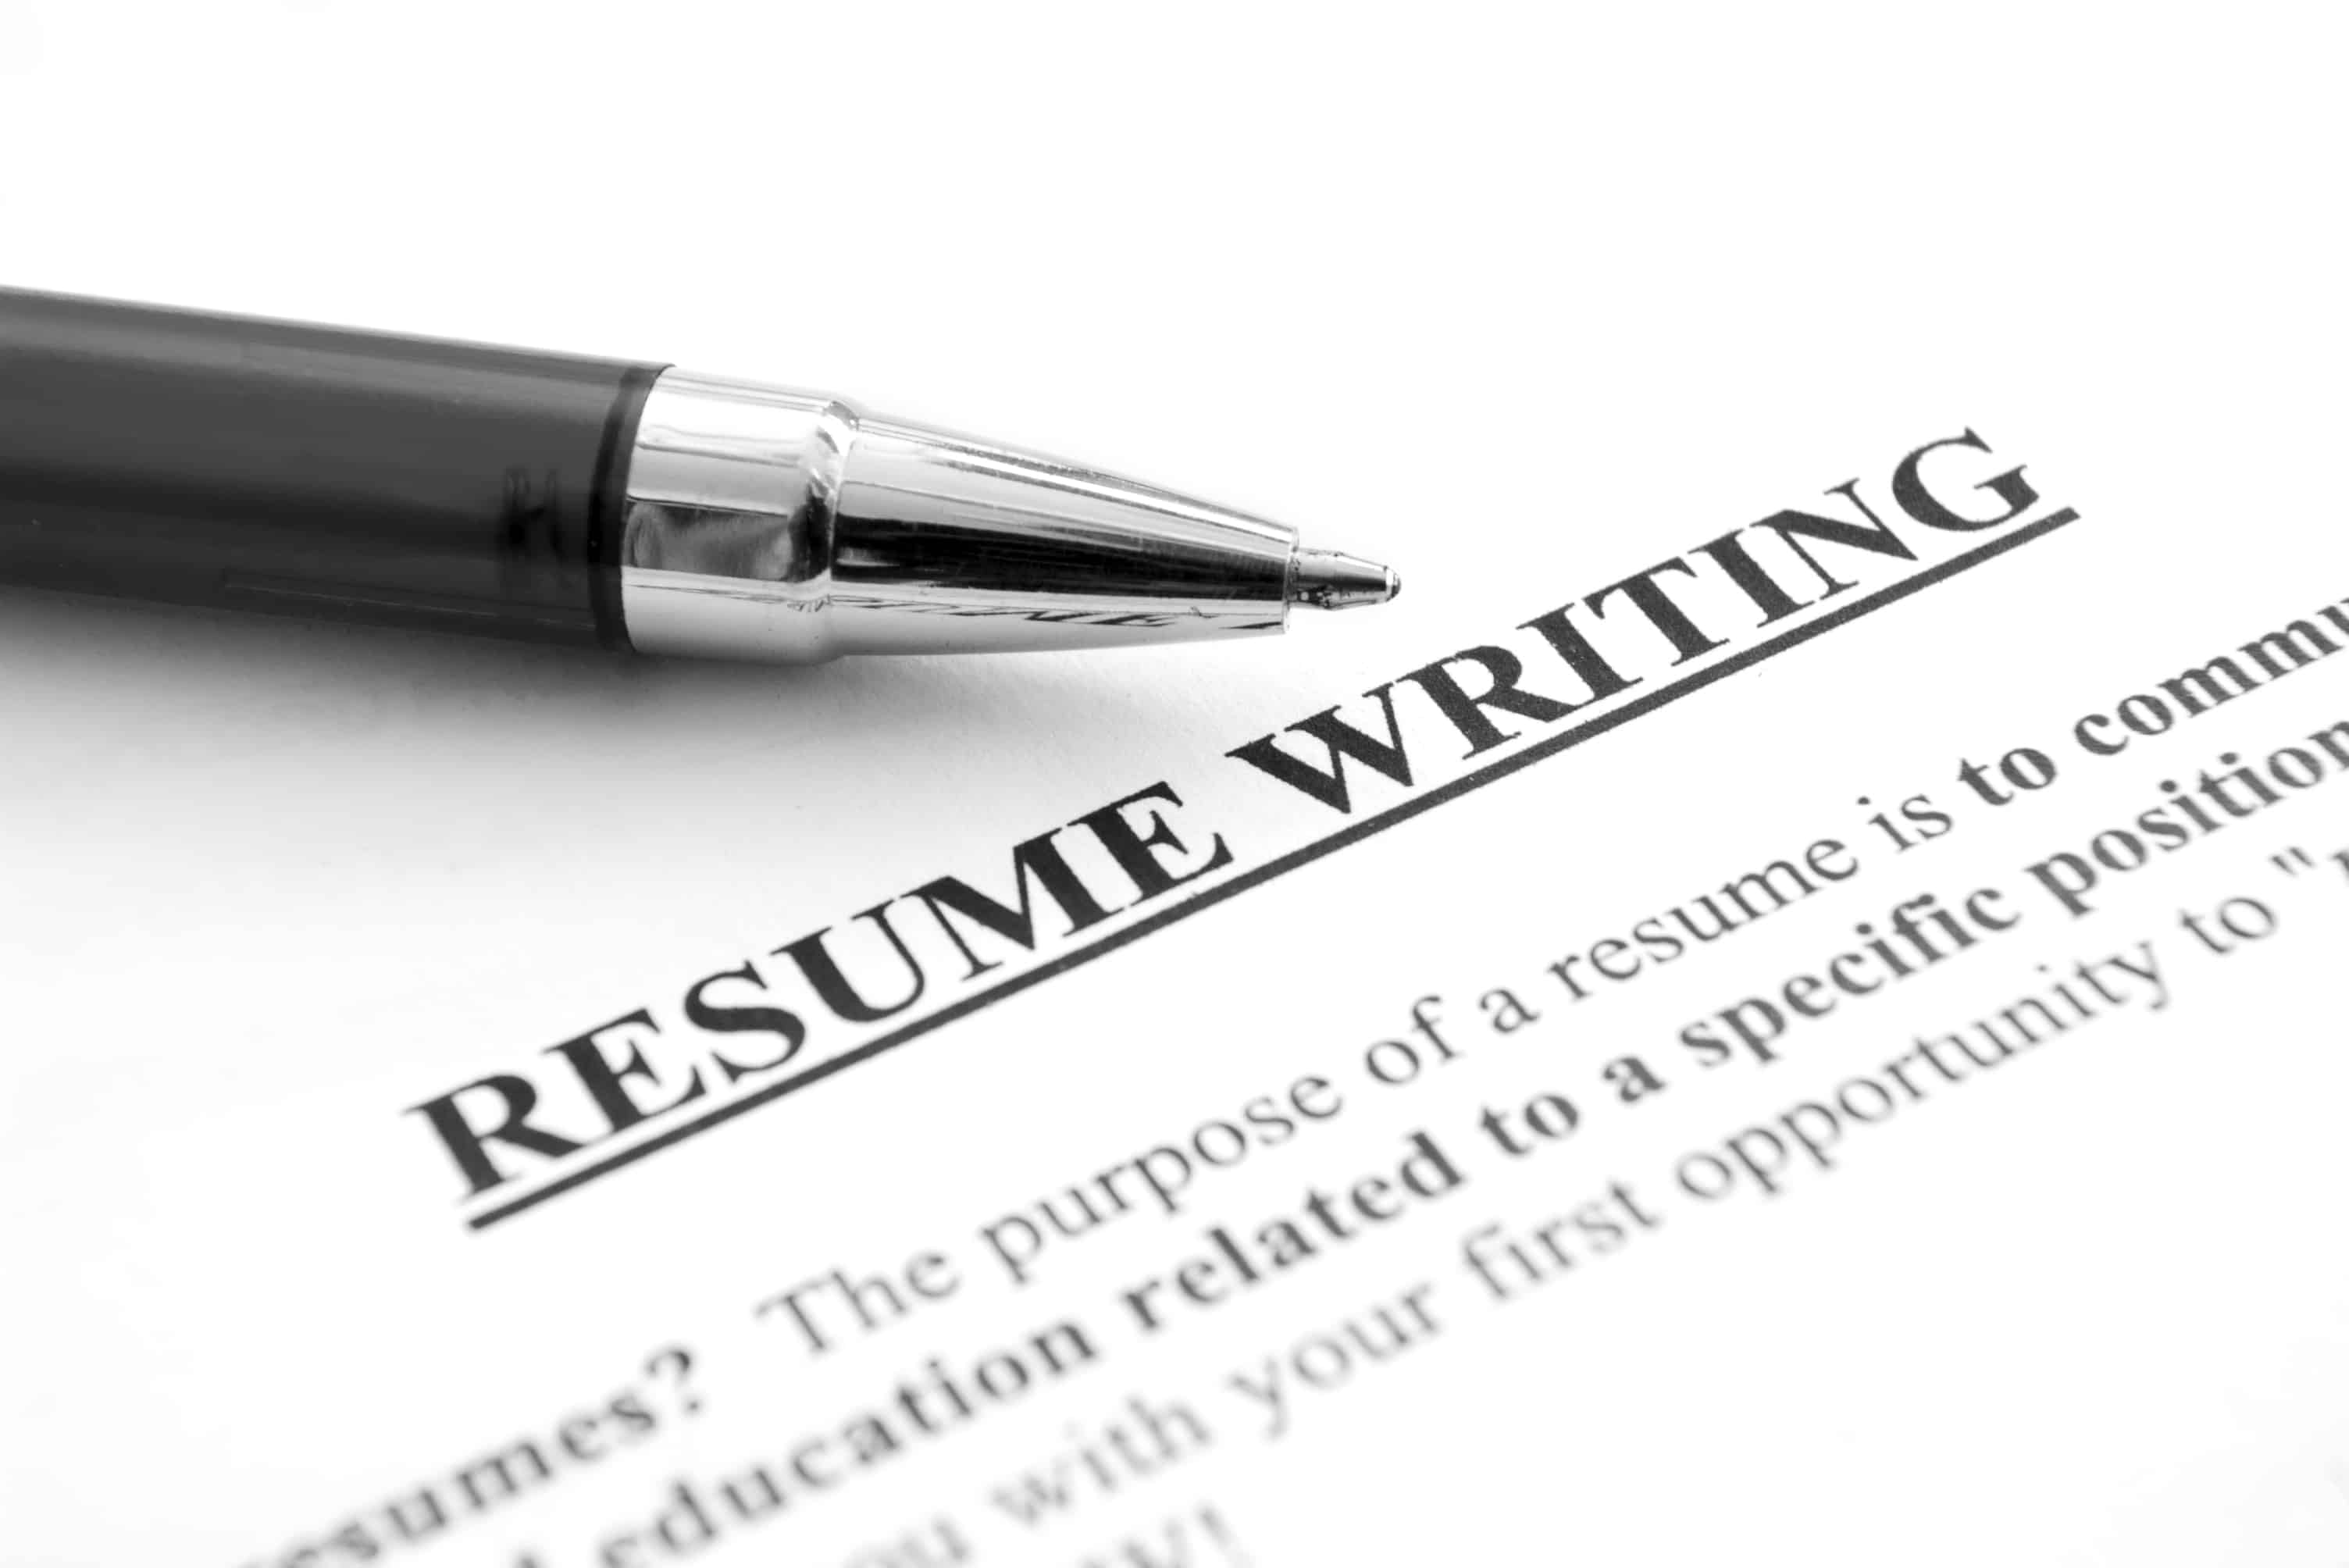 Resume writing services toronto area